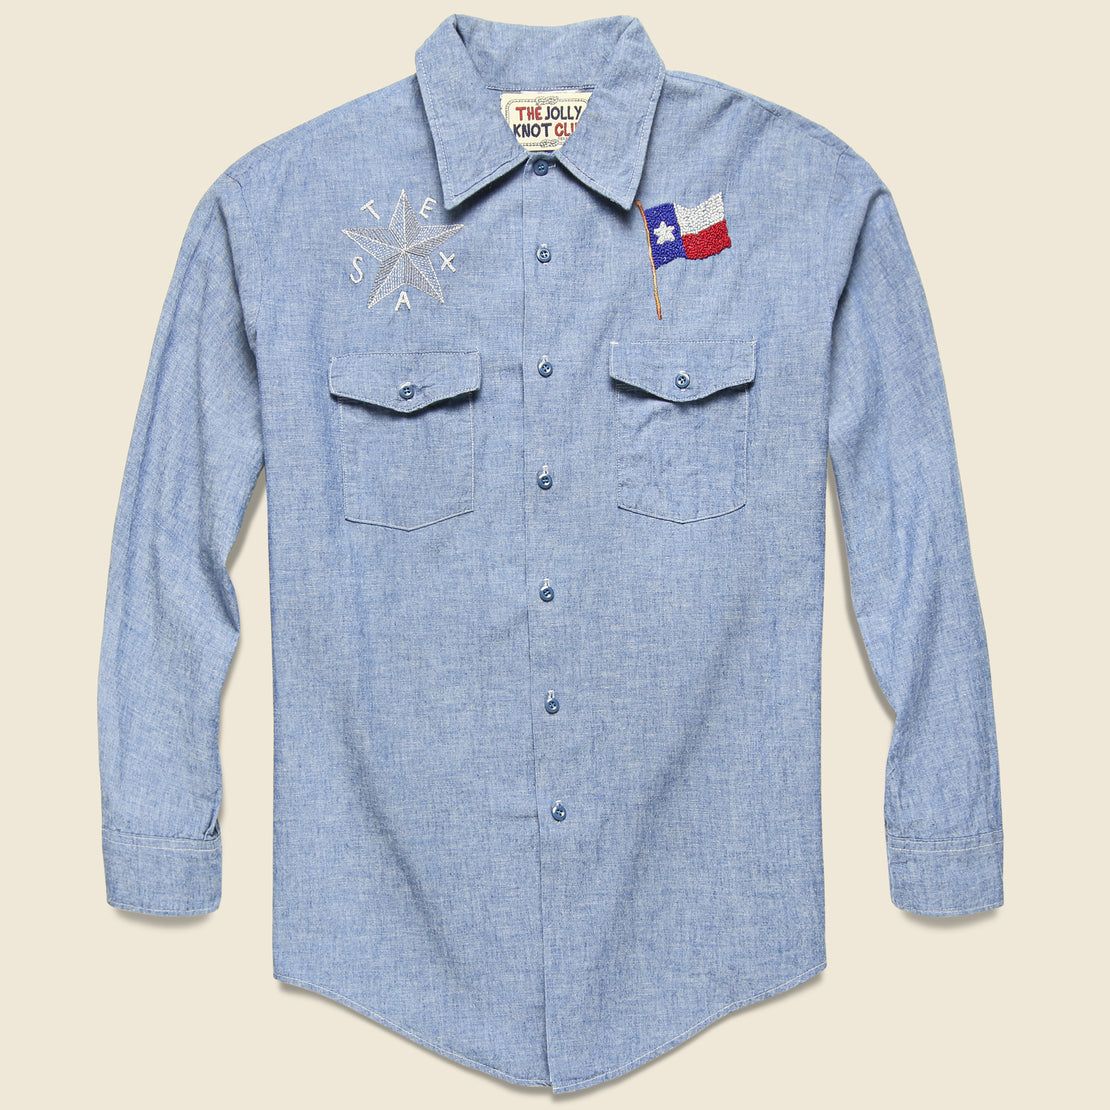 Embroidered Chambray Shirt - The Texas Brand